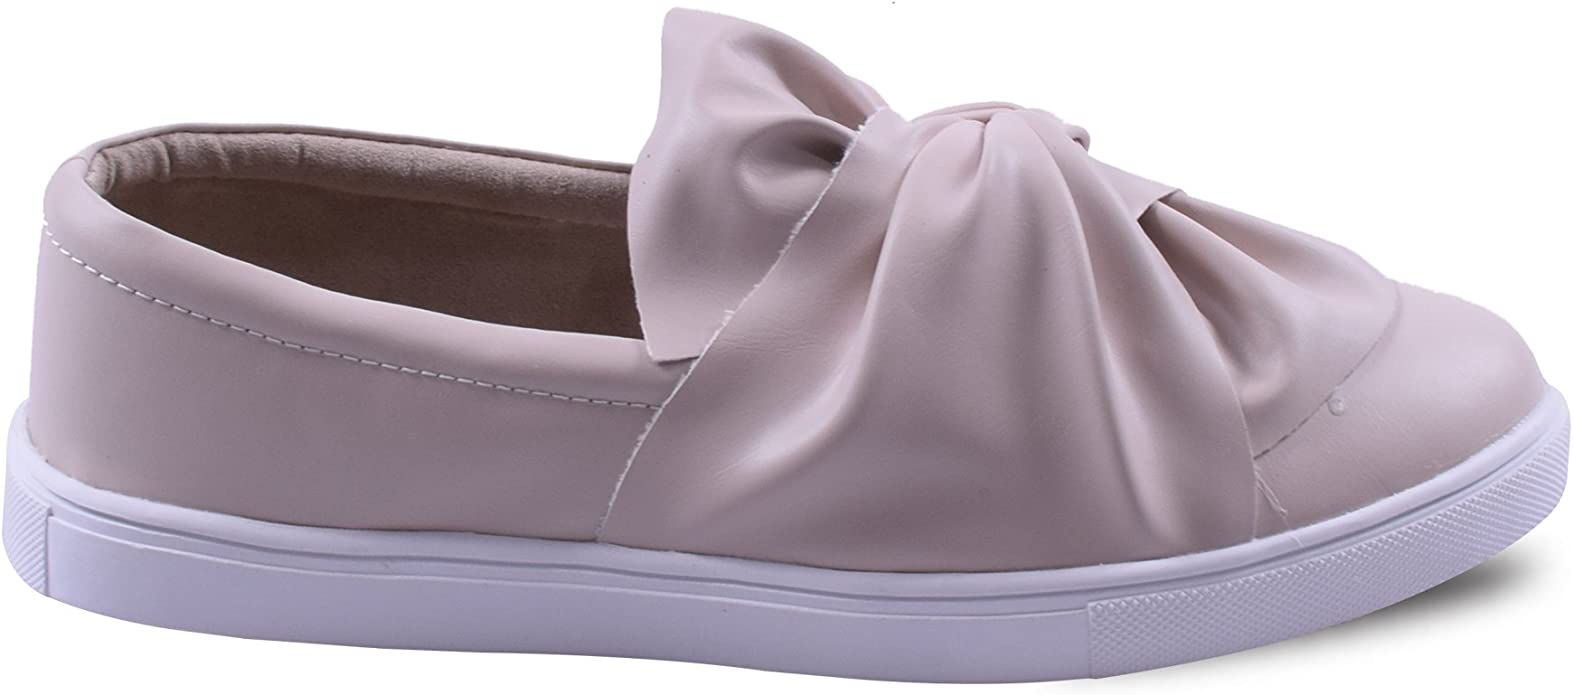 Womens Ladies Slip On Flat Knot Front